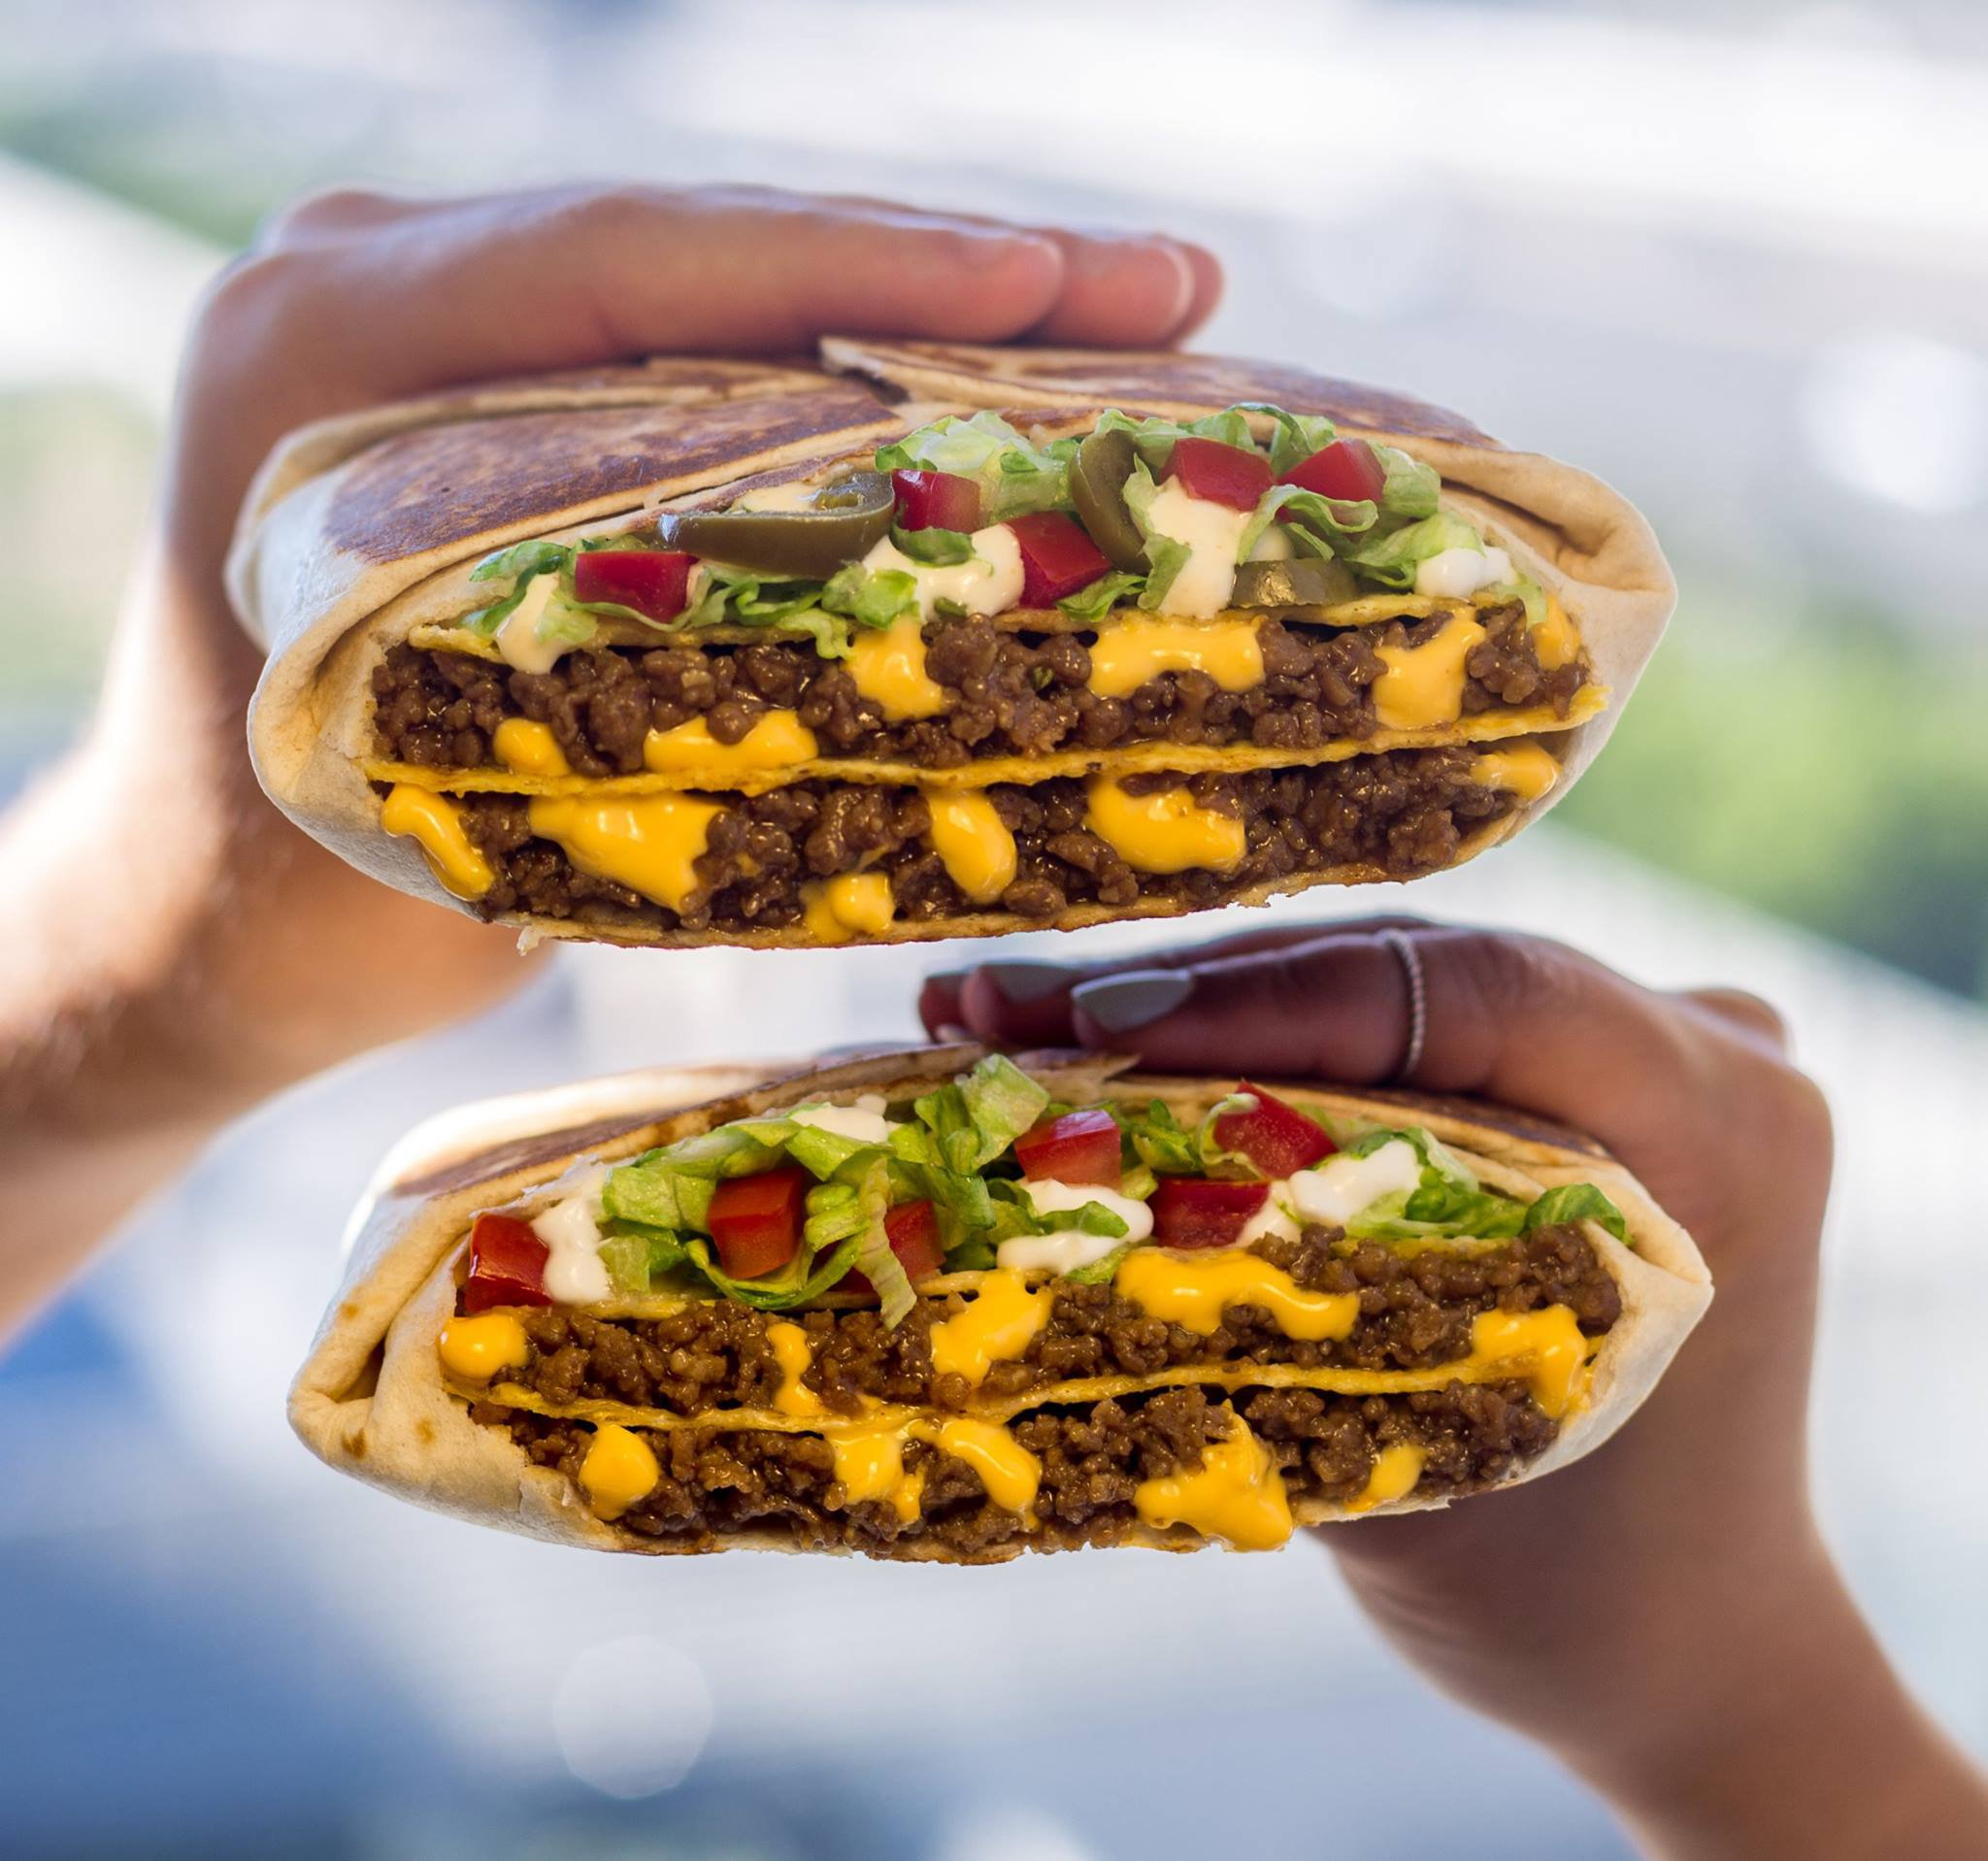 taco bell menu prices | burittos menu, nachos, specialties, desserts